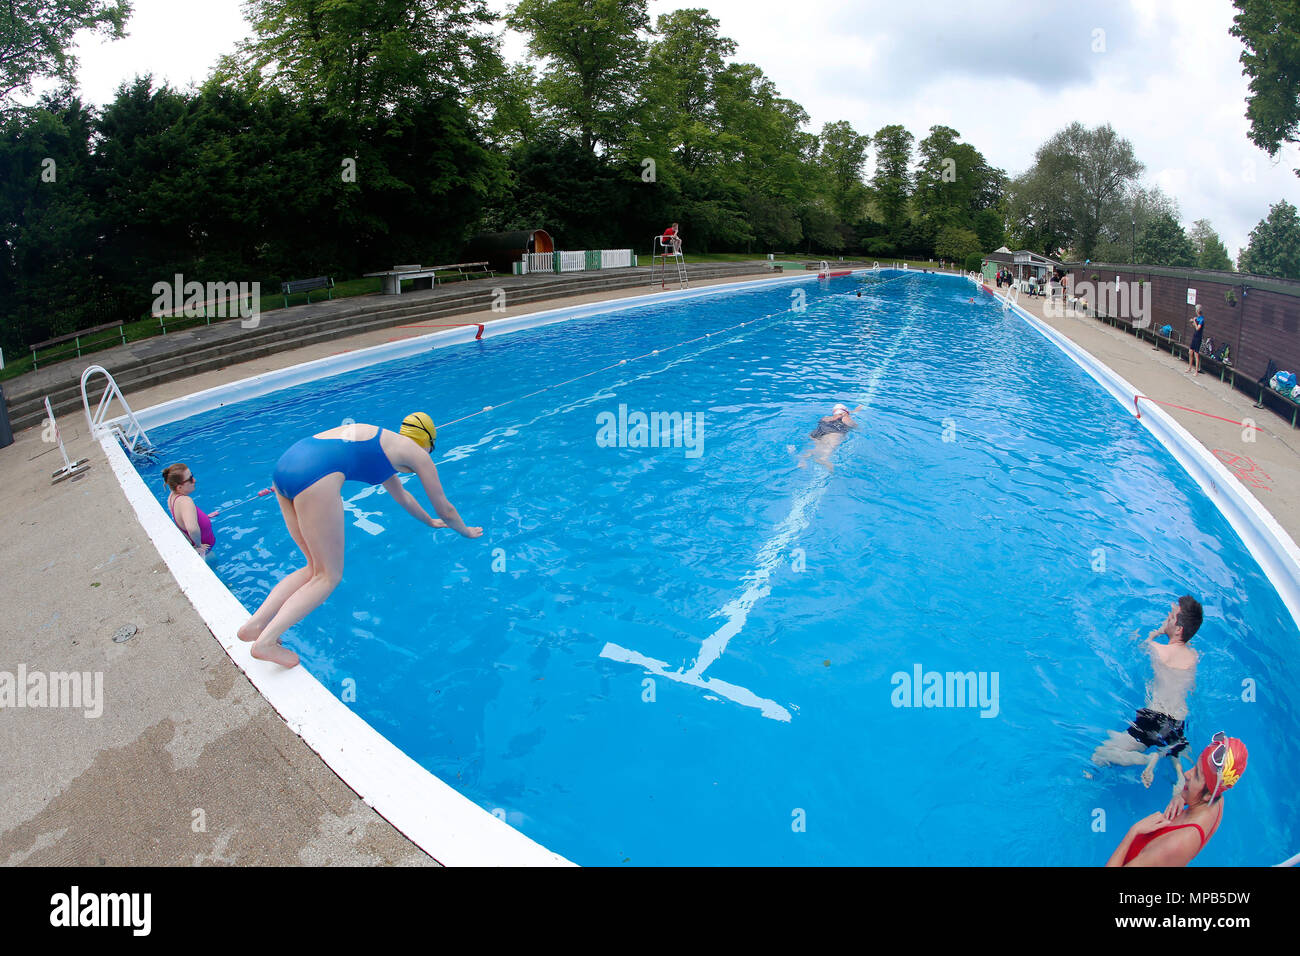 The cambridge lido the longest in europe on jesus green opens for the summer season stock photo for Jesus green swimming pool cambridge